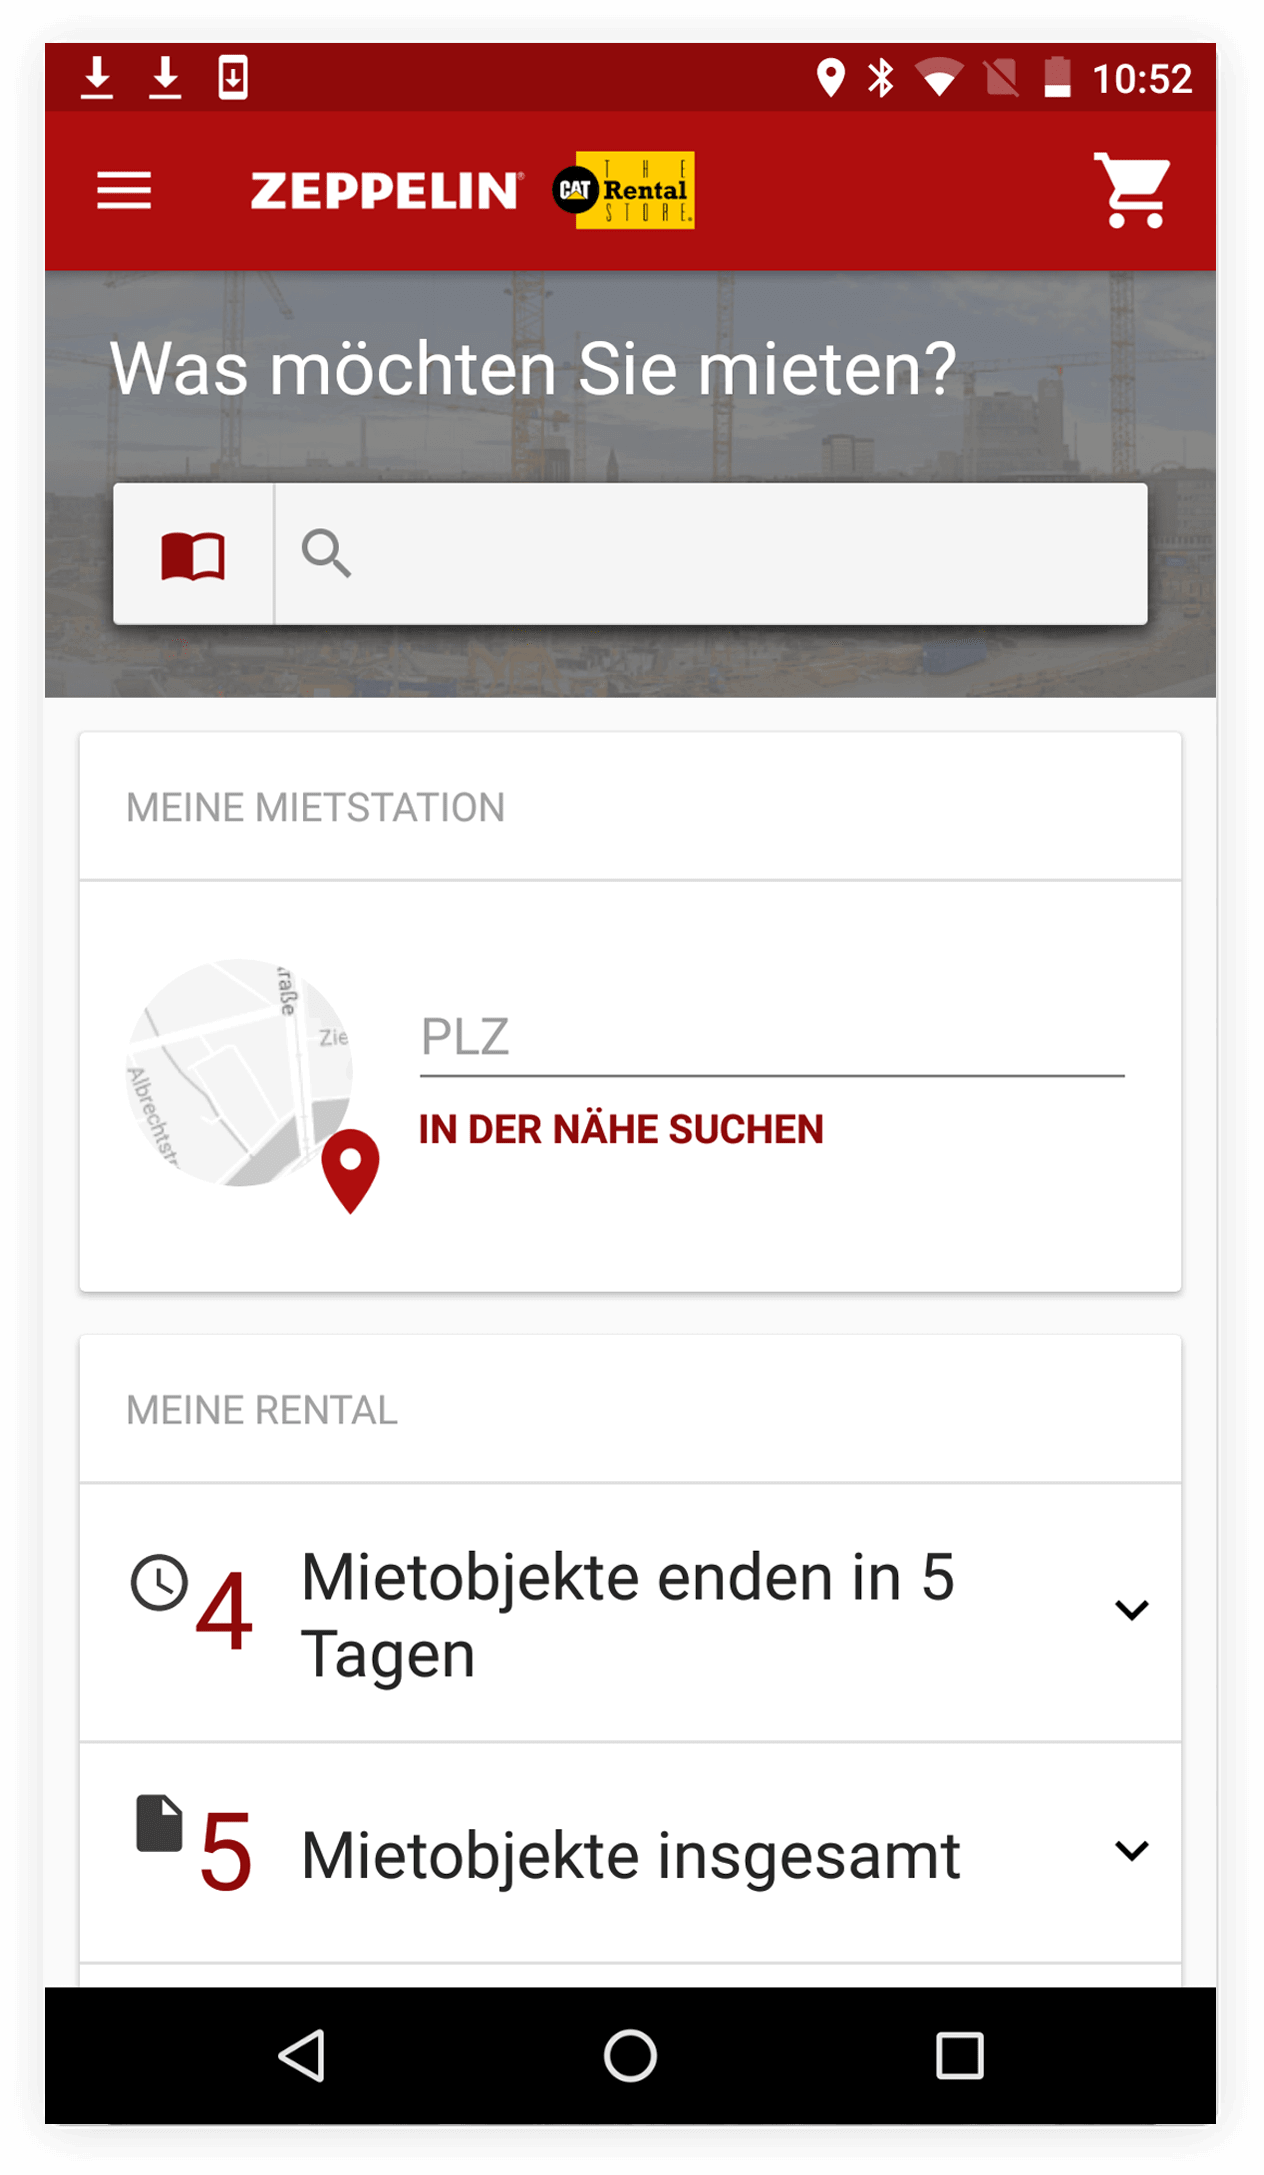 Zeppelin app Android screenshot